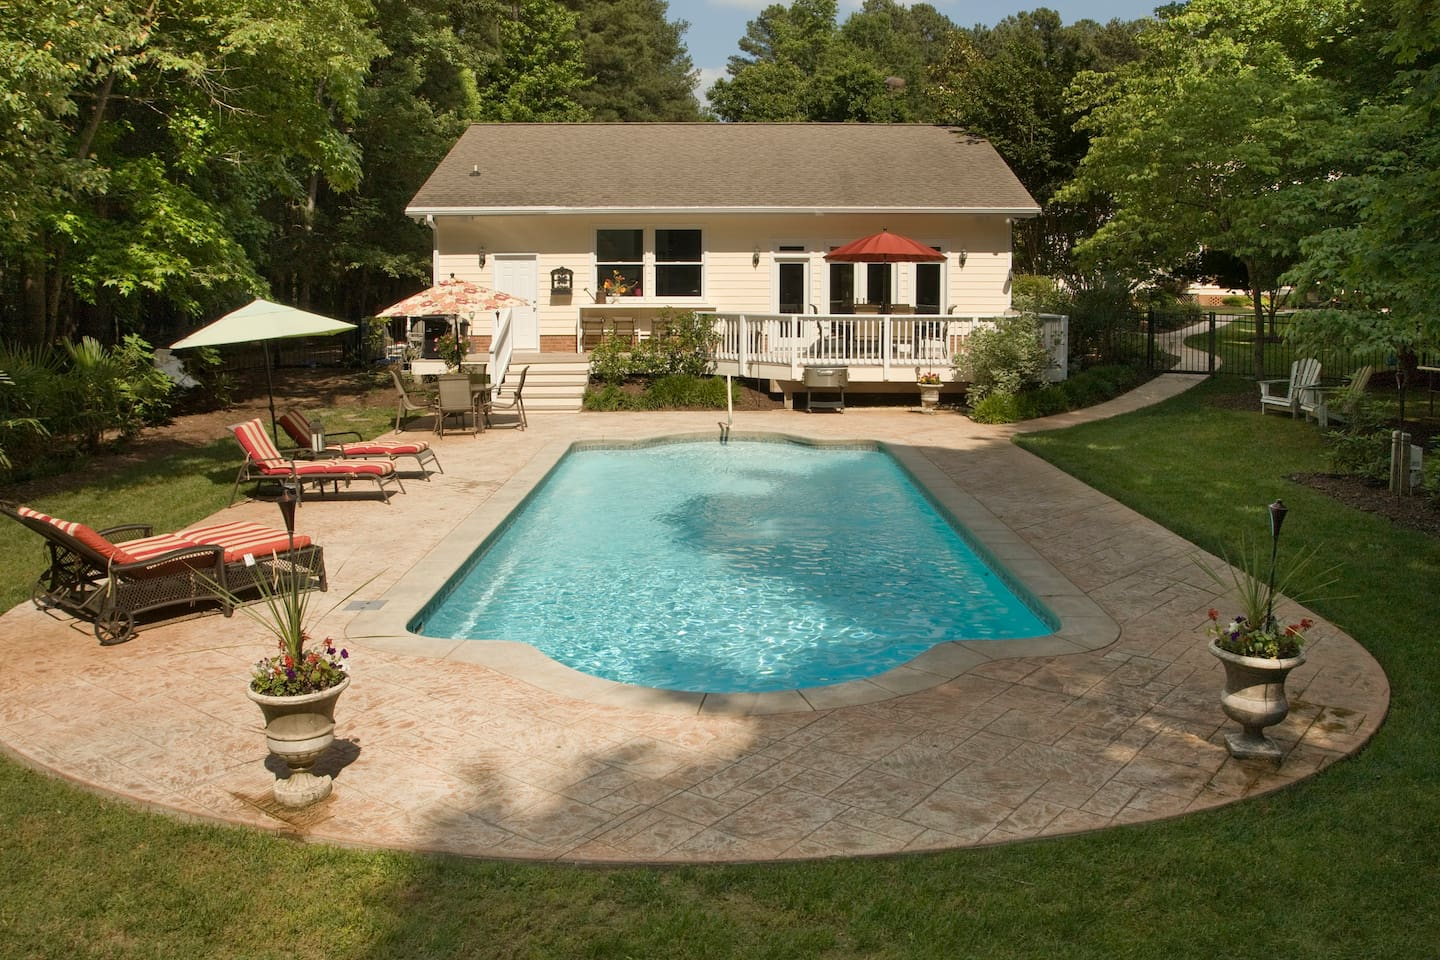 Pool House in Chapel Hill. Pool is usually open from the End of April through the End of September.